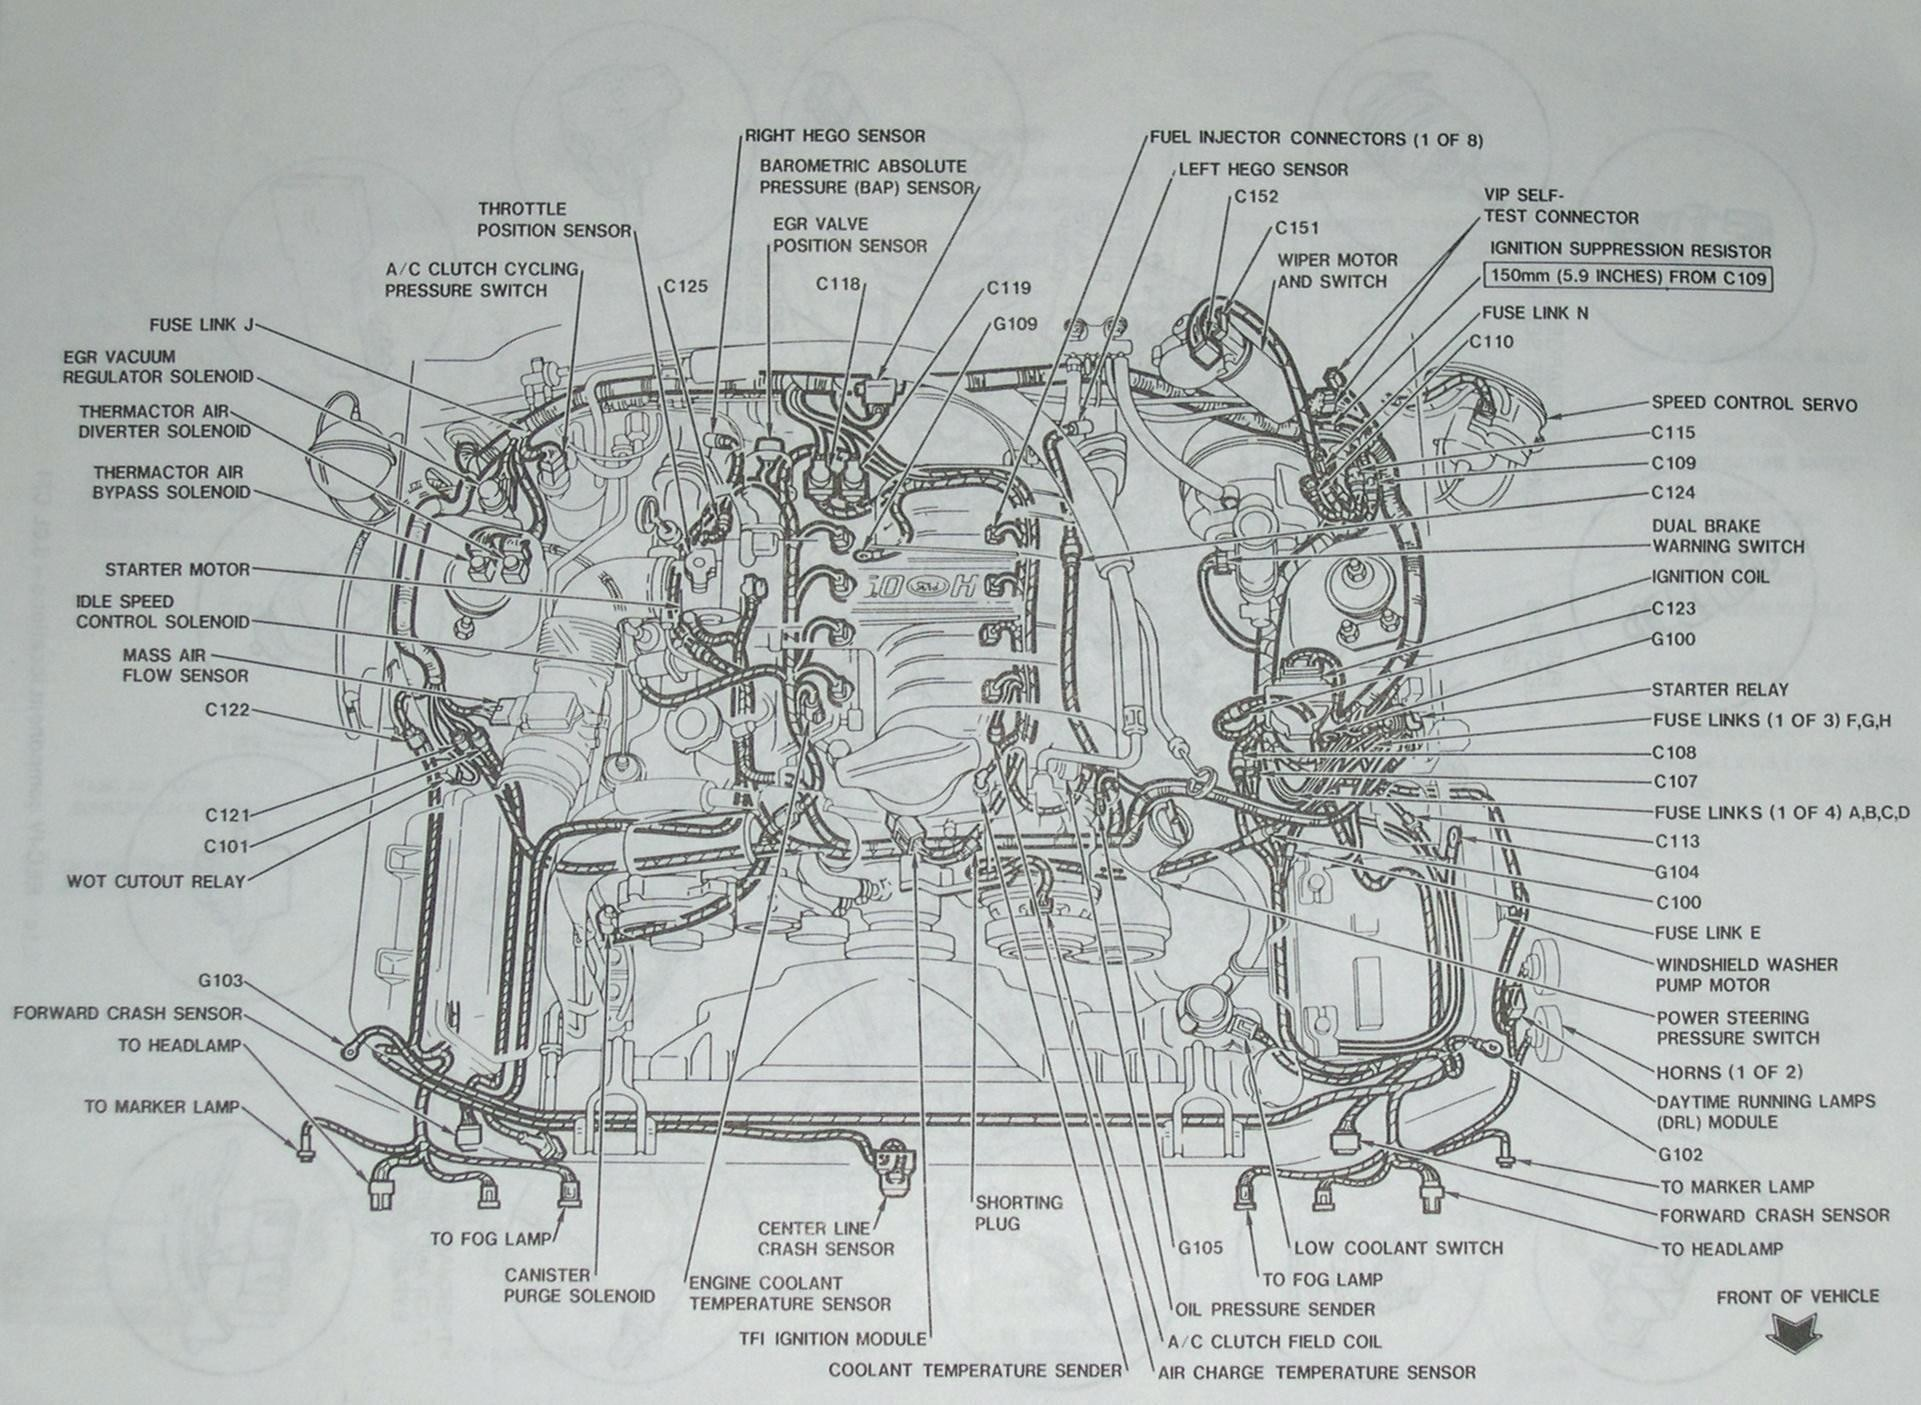 2006 Mustang Wiring Diagram